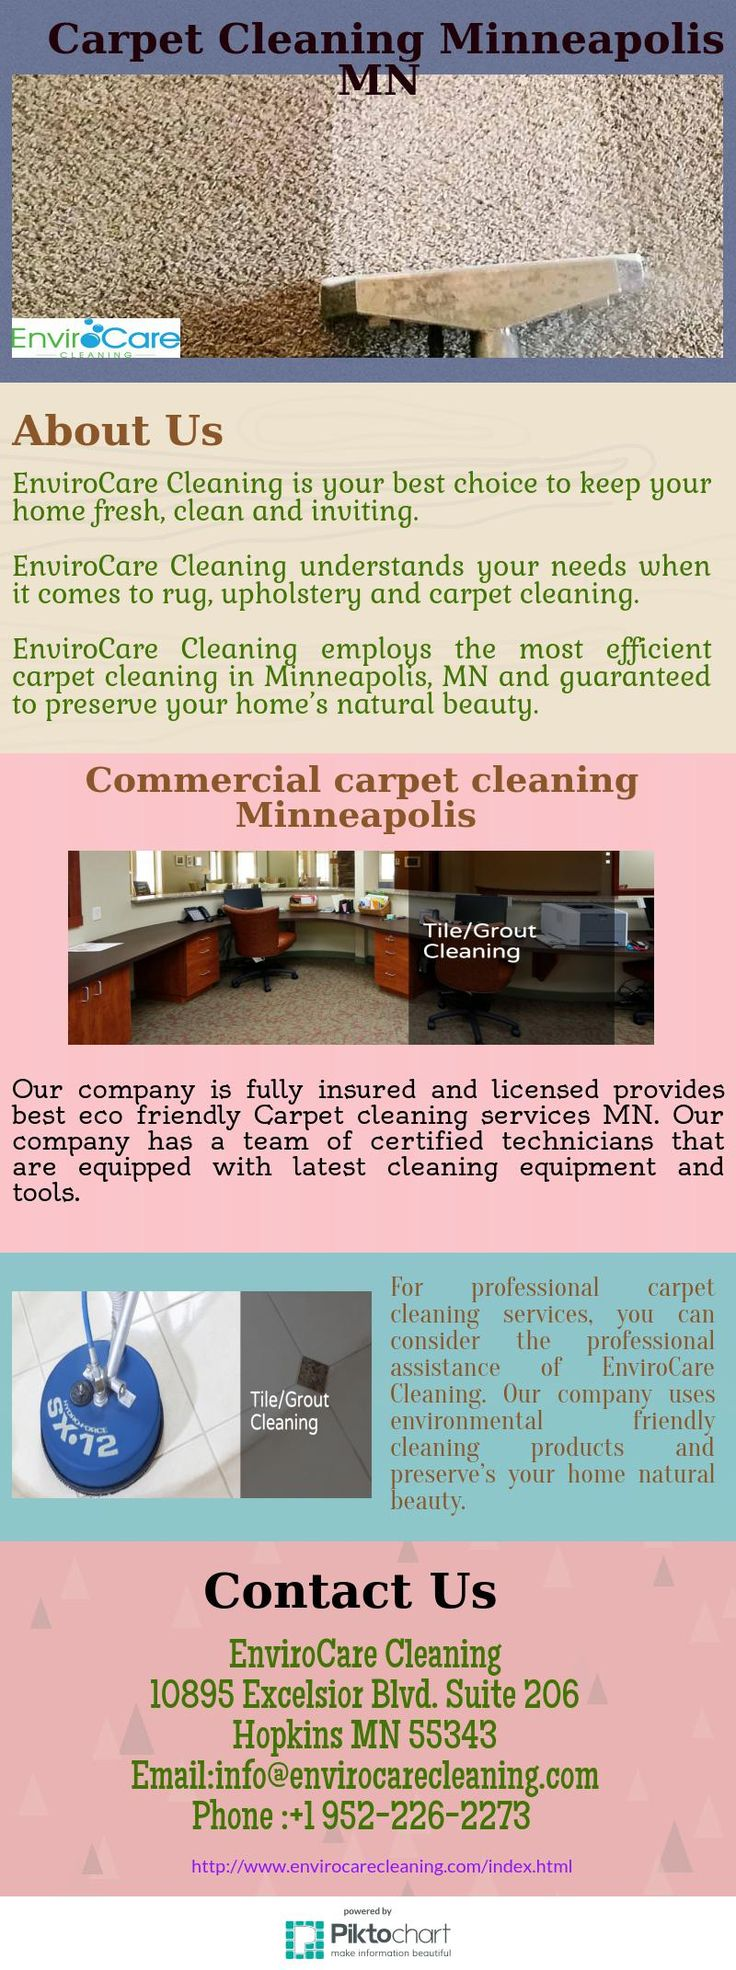 Our company is fully insured and licensed provides best eco friendly carpet cleaning services mn